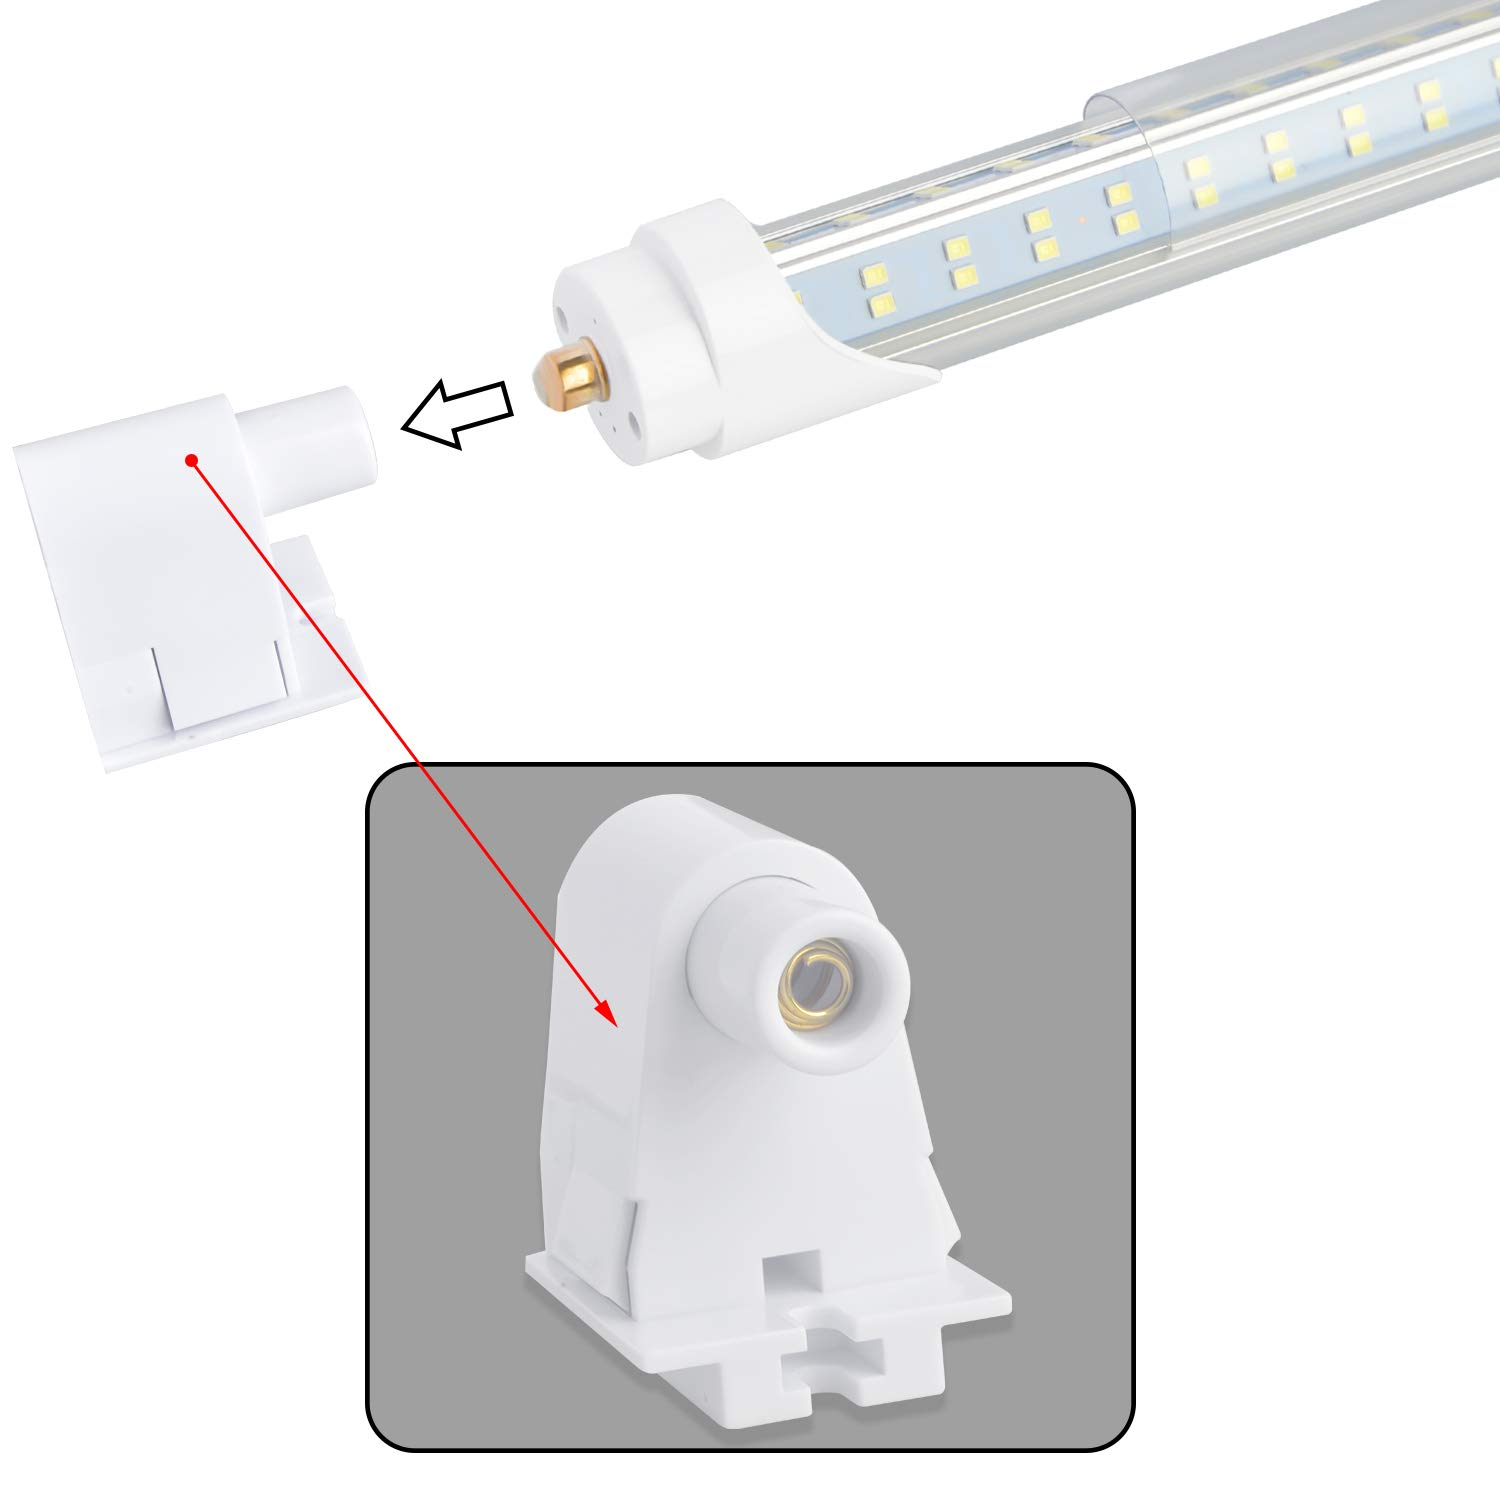 Single Pin FA8 Base,Double sided 4 Rows 270 Degree V Shaped 768 LED Chip Bulbs Ballast Bypass,12PCS Dual-End Powered T8 T10 T12 8ft LED Tube 96 120W 6500K 12200 Lumens,Clear Cover